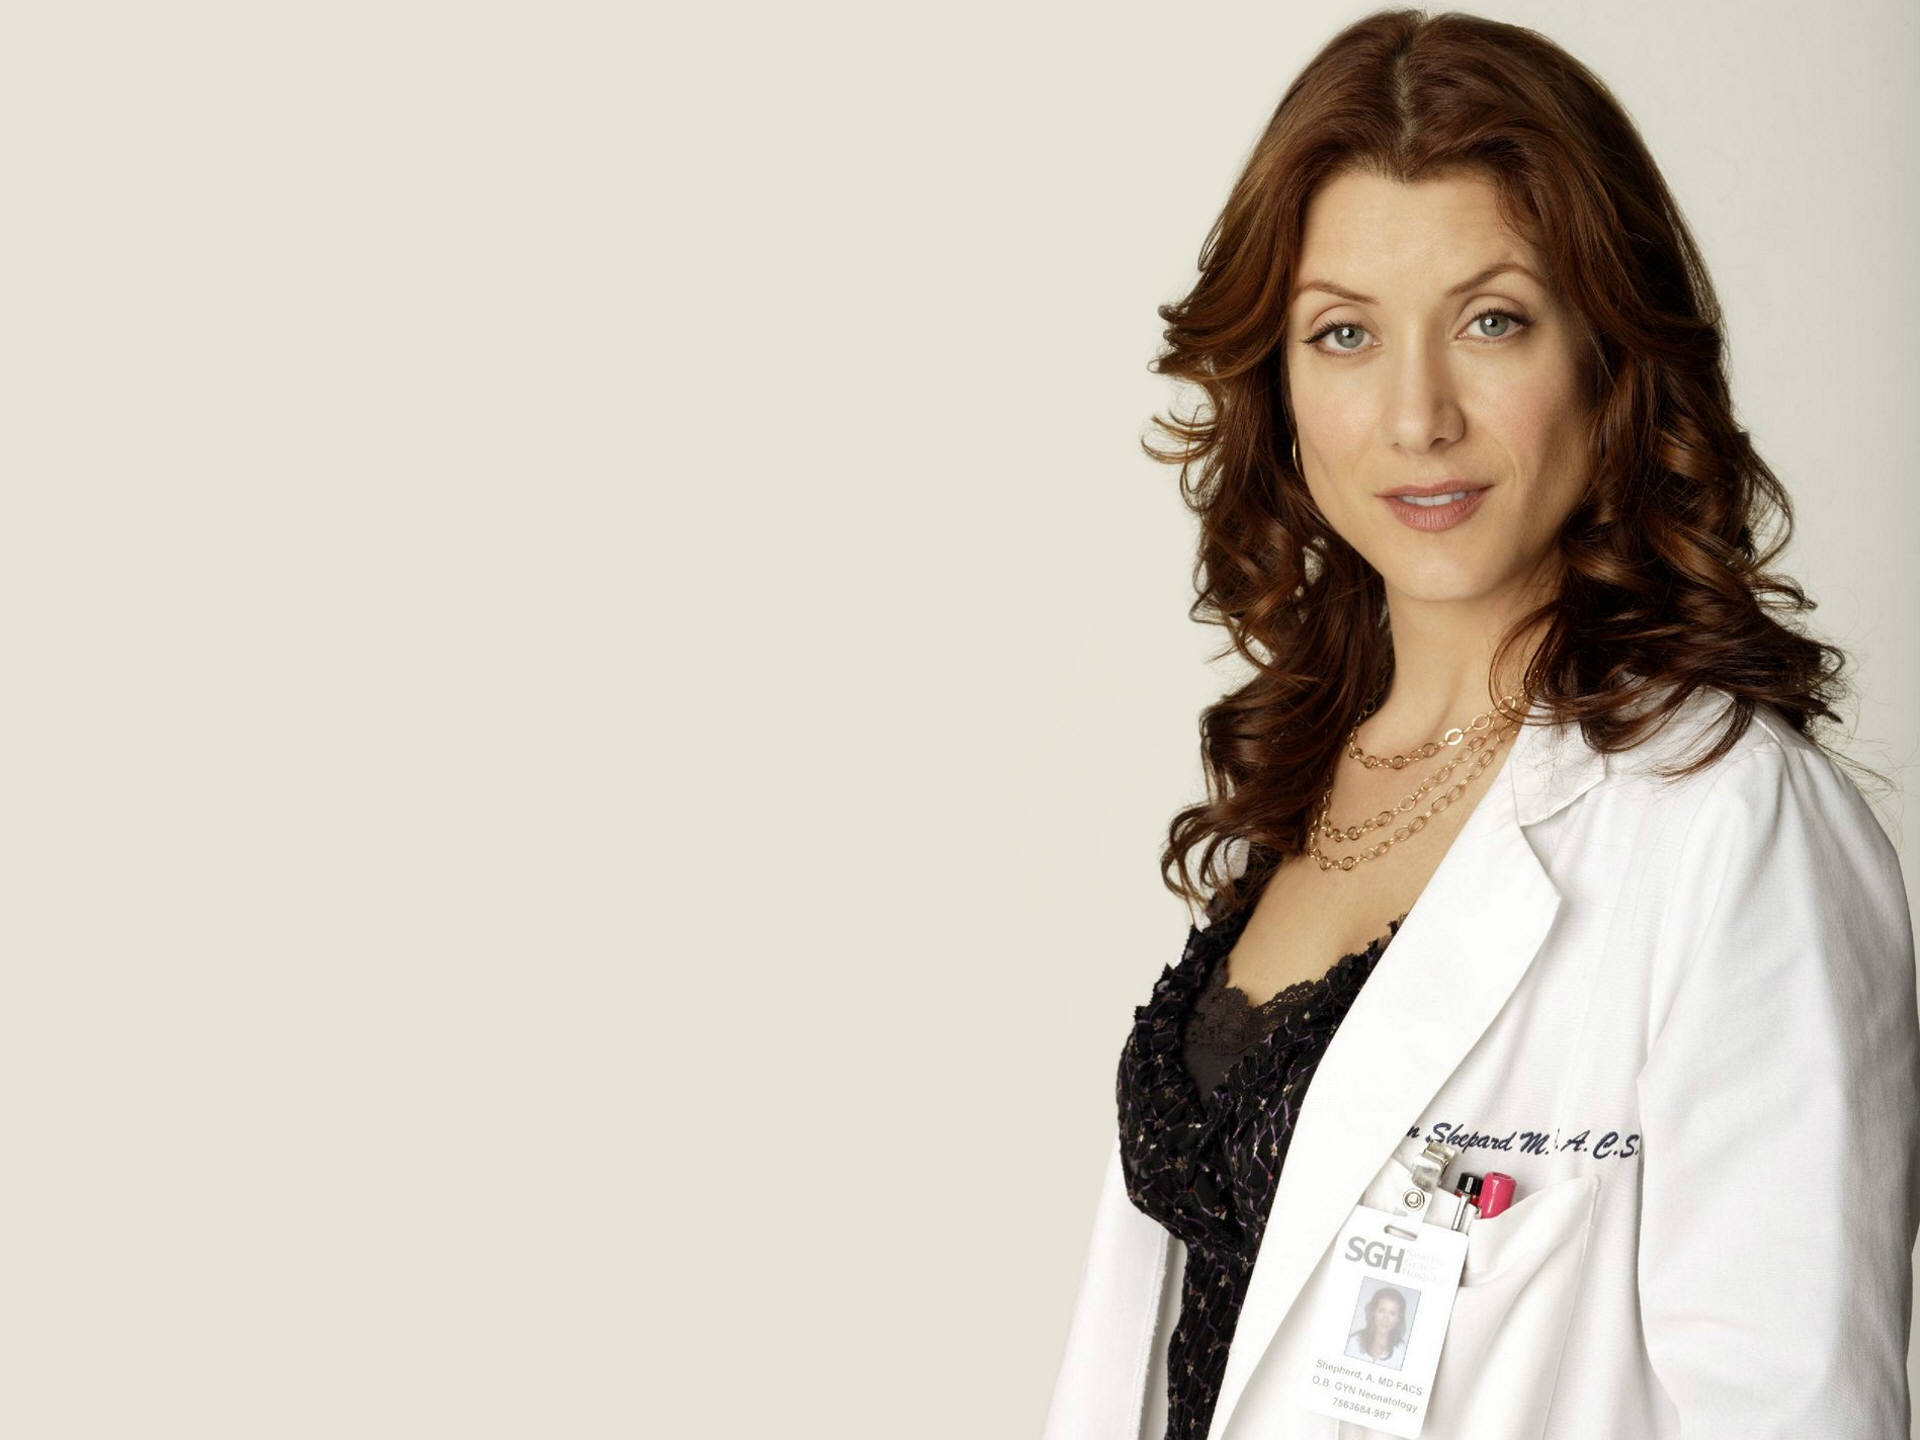 1920x1440 - Kate Walsh Wallpapers 3